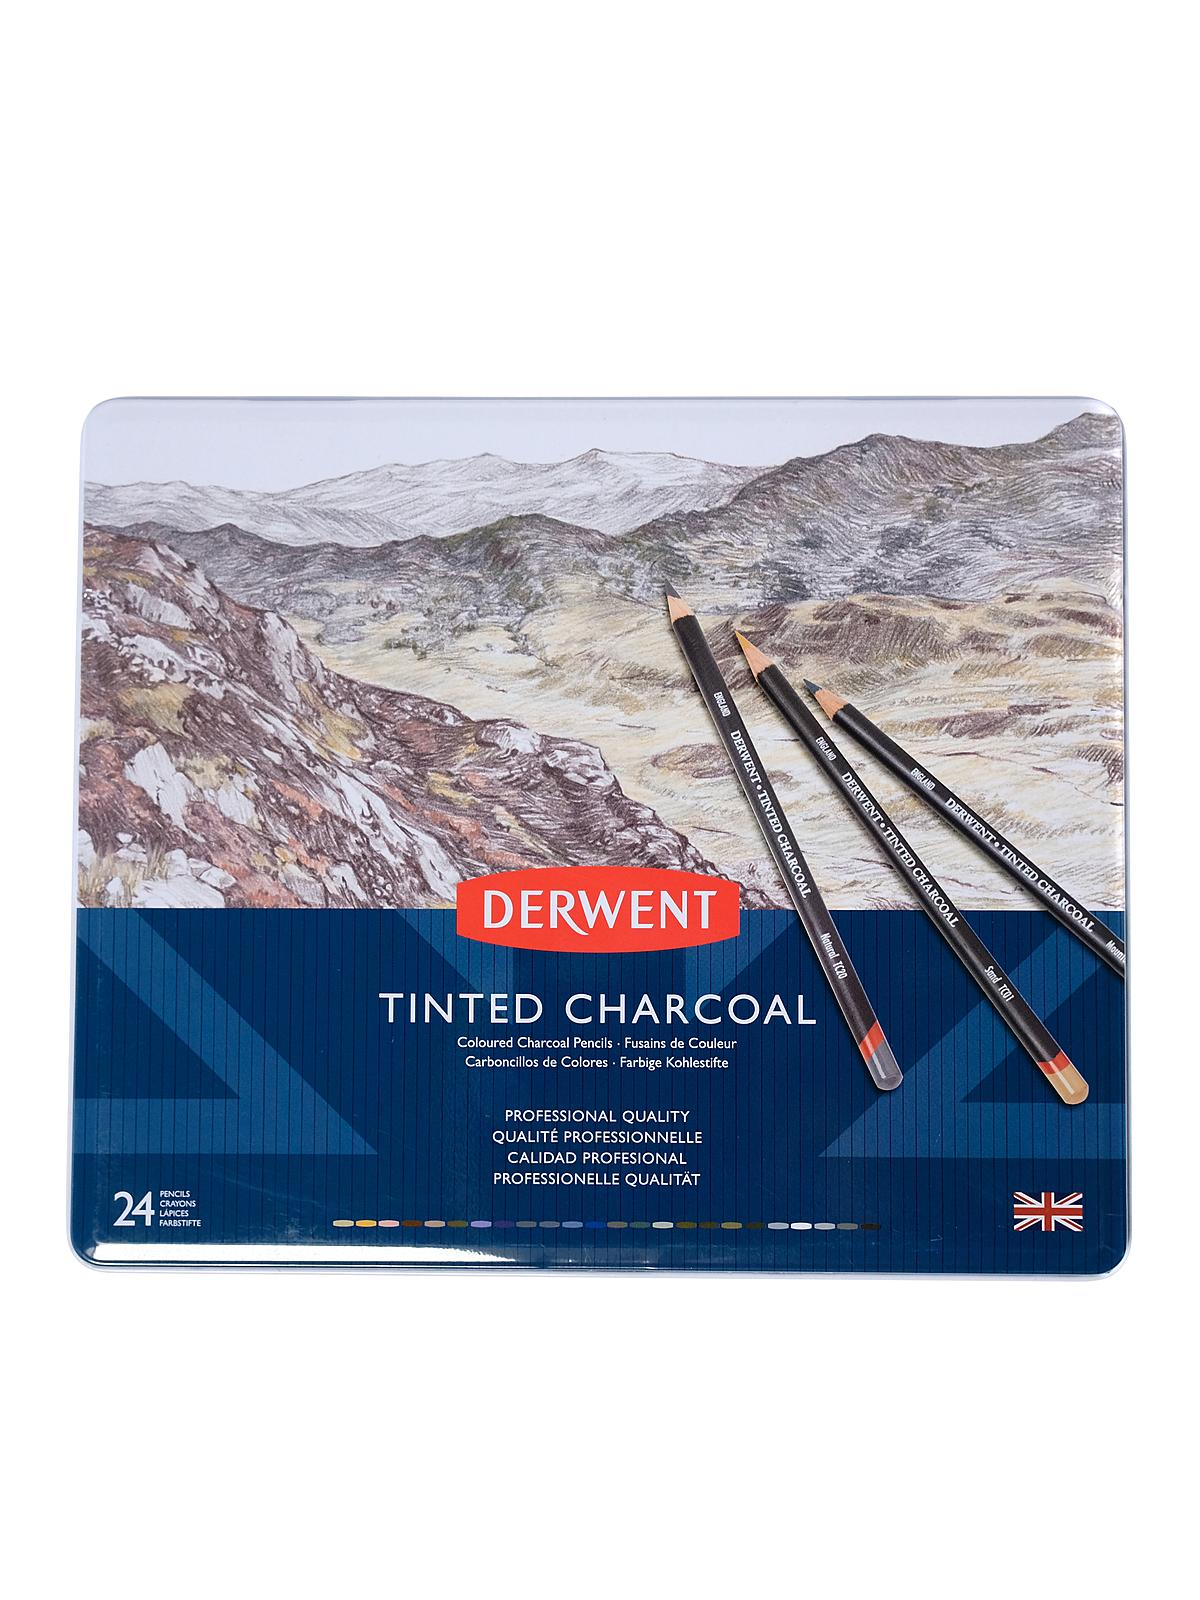 derwent tinted charcoal pencil sets ebay